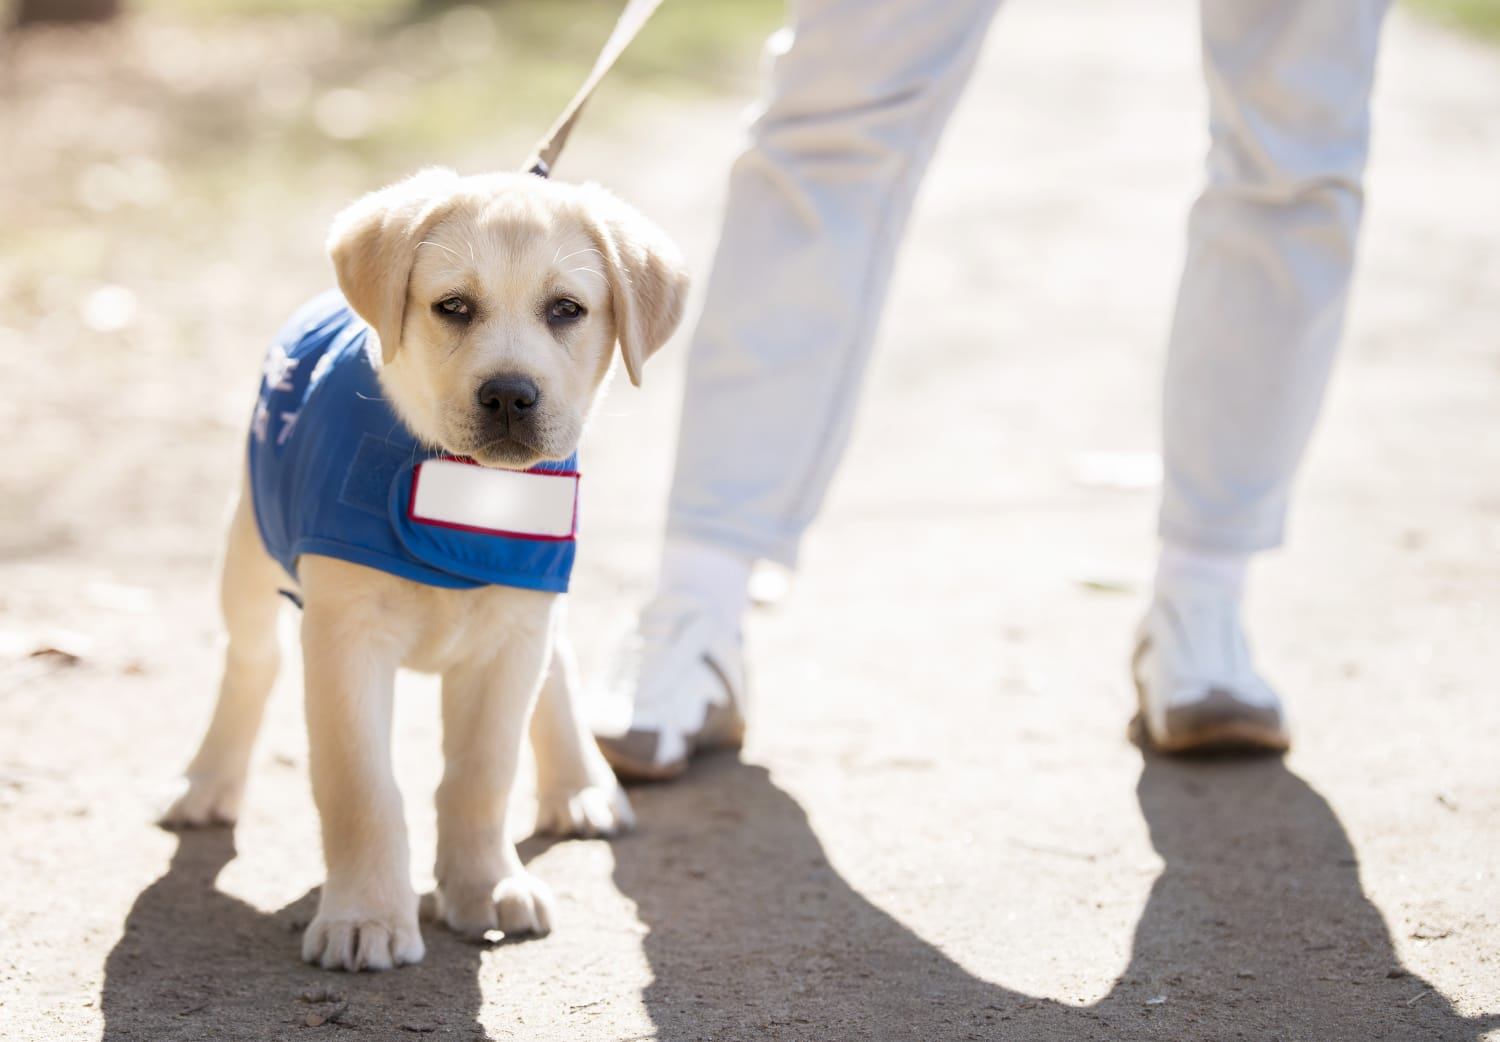 This Guide Dog Organization Is Looking for Volunteer Remote Puppy Raisers